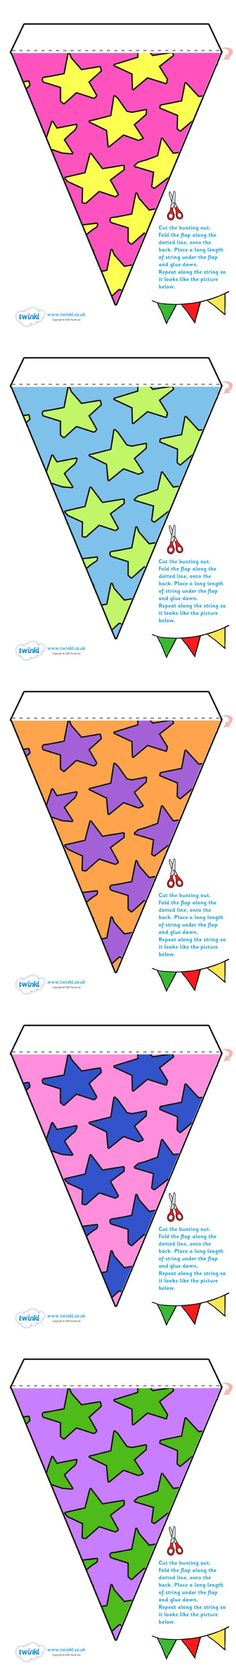 Free Printable Display Bunting (Stars)